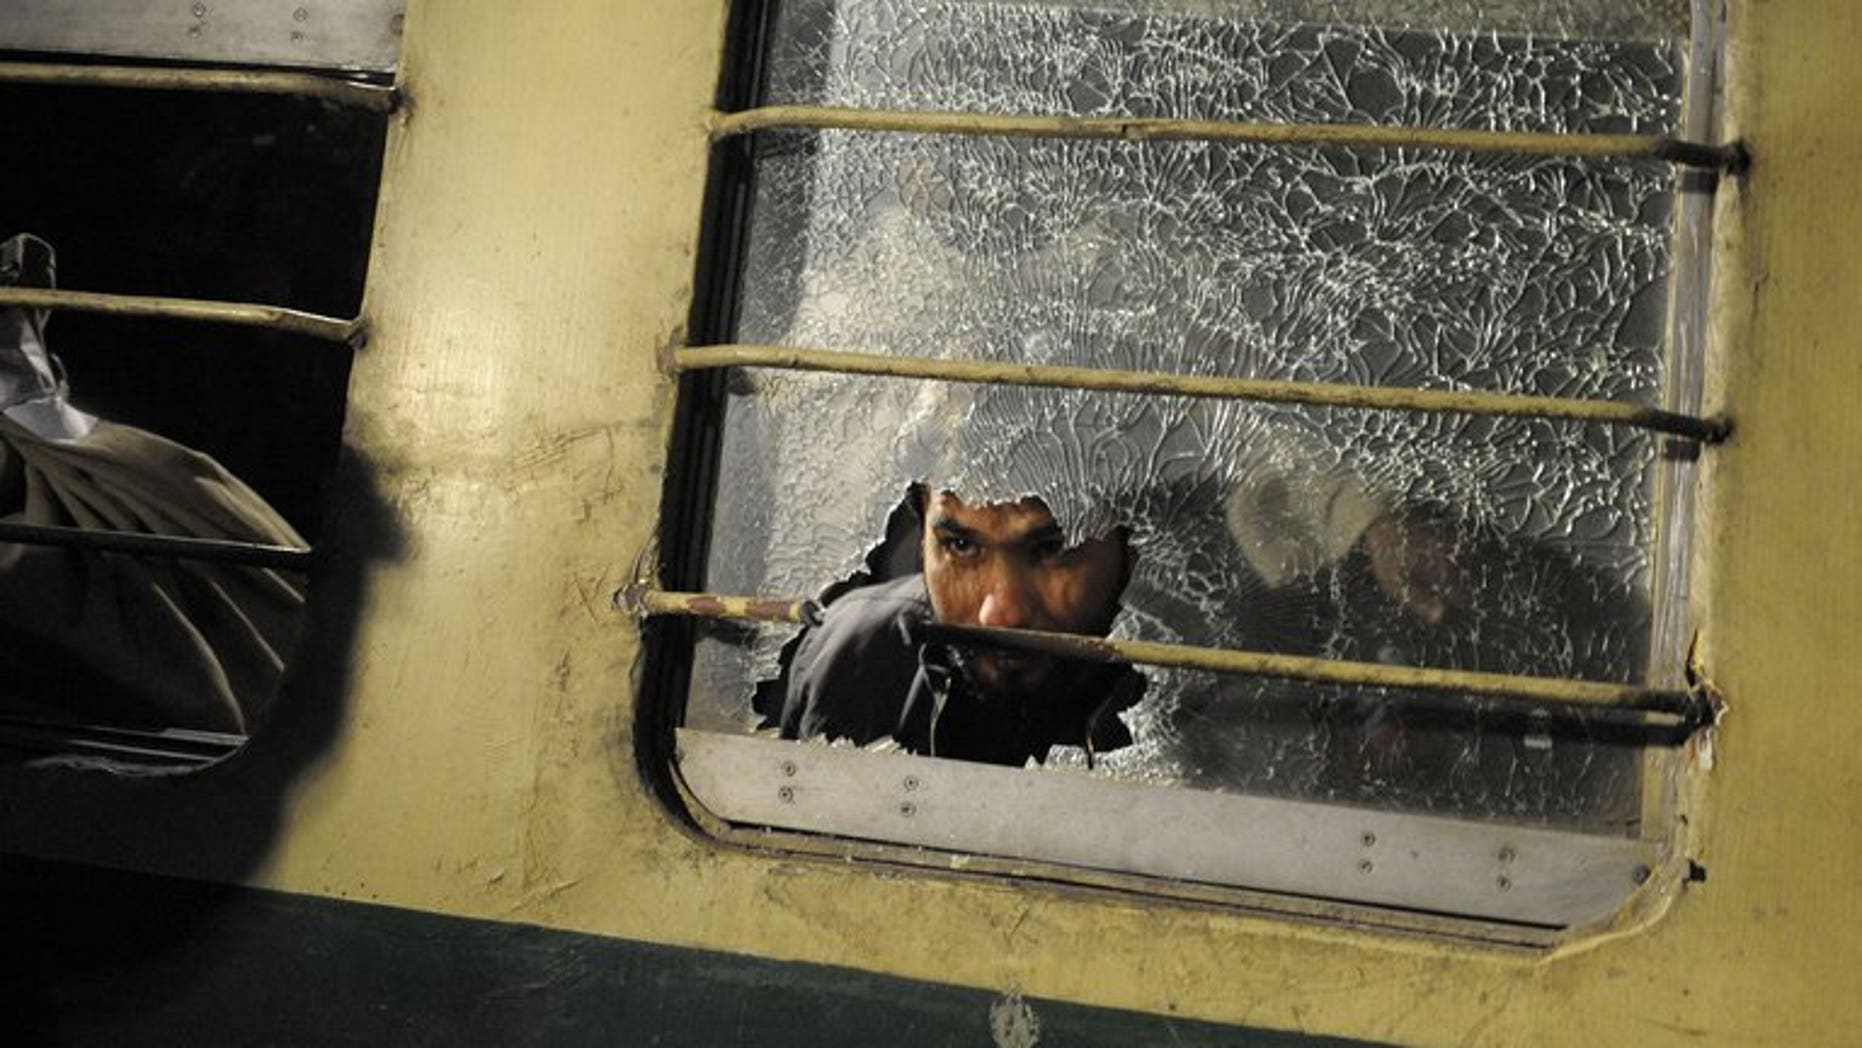 A man looks through a broken mirror on a train after an attack at a railway station in Quetta last year. Unidentified militants killed two people and wounded 24 Friday in a gun and rocket attack on a passenger train in restive southwest Pakistan, officials said.